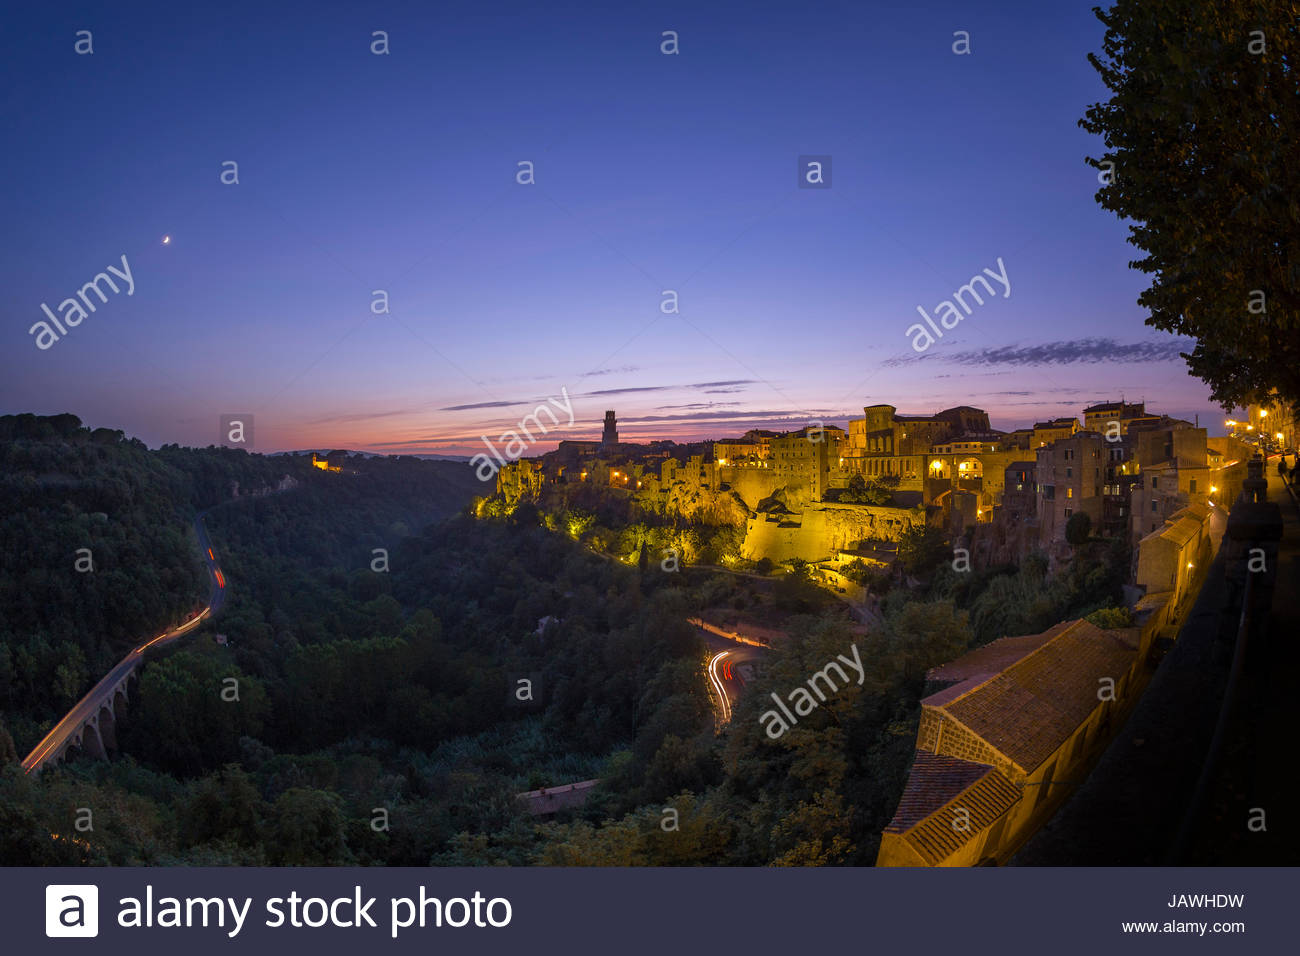 The moon at dusk over Pitigliano, a Medieval town built on top of a tuff cliff, in Tuscany. - Stock Image